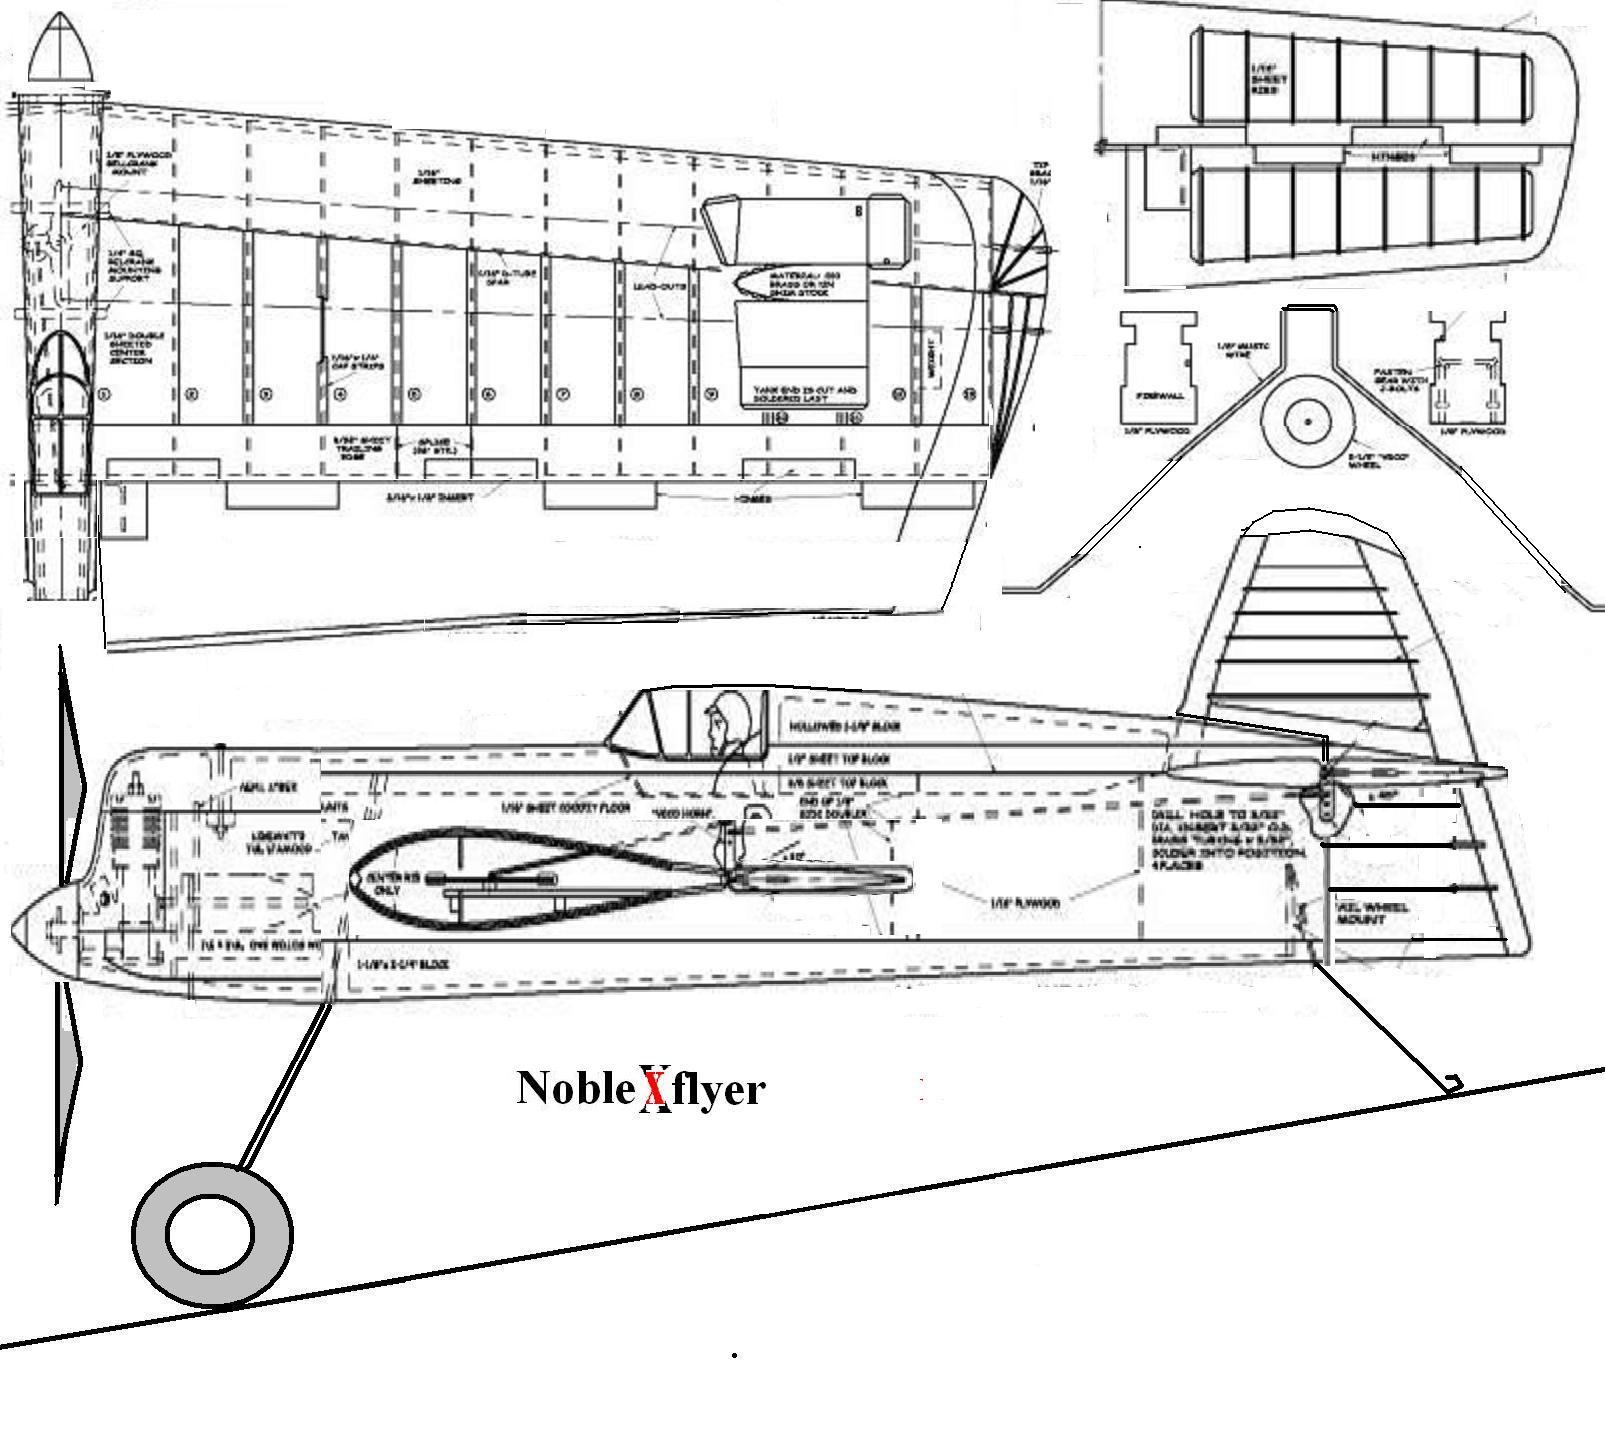 Click image for larger version  Name:Nobler-Fun Xfly.JPG Views:116 Size:242.2 KB ID:1999502